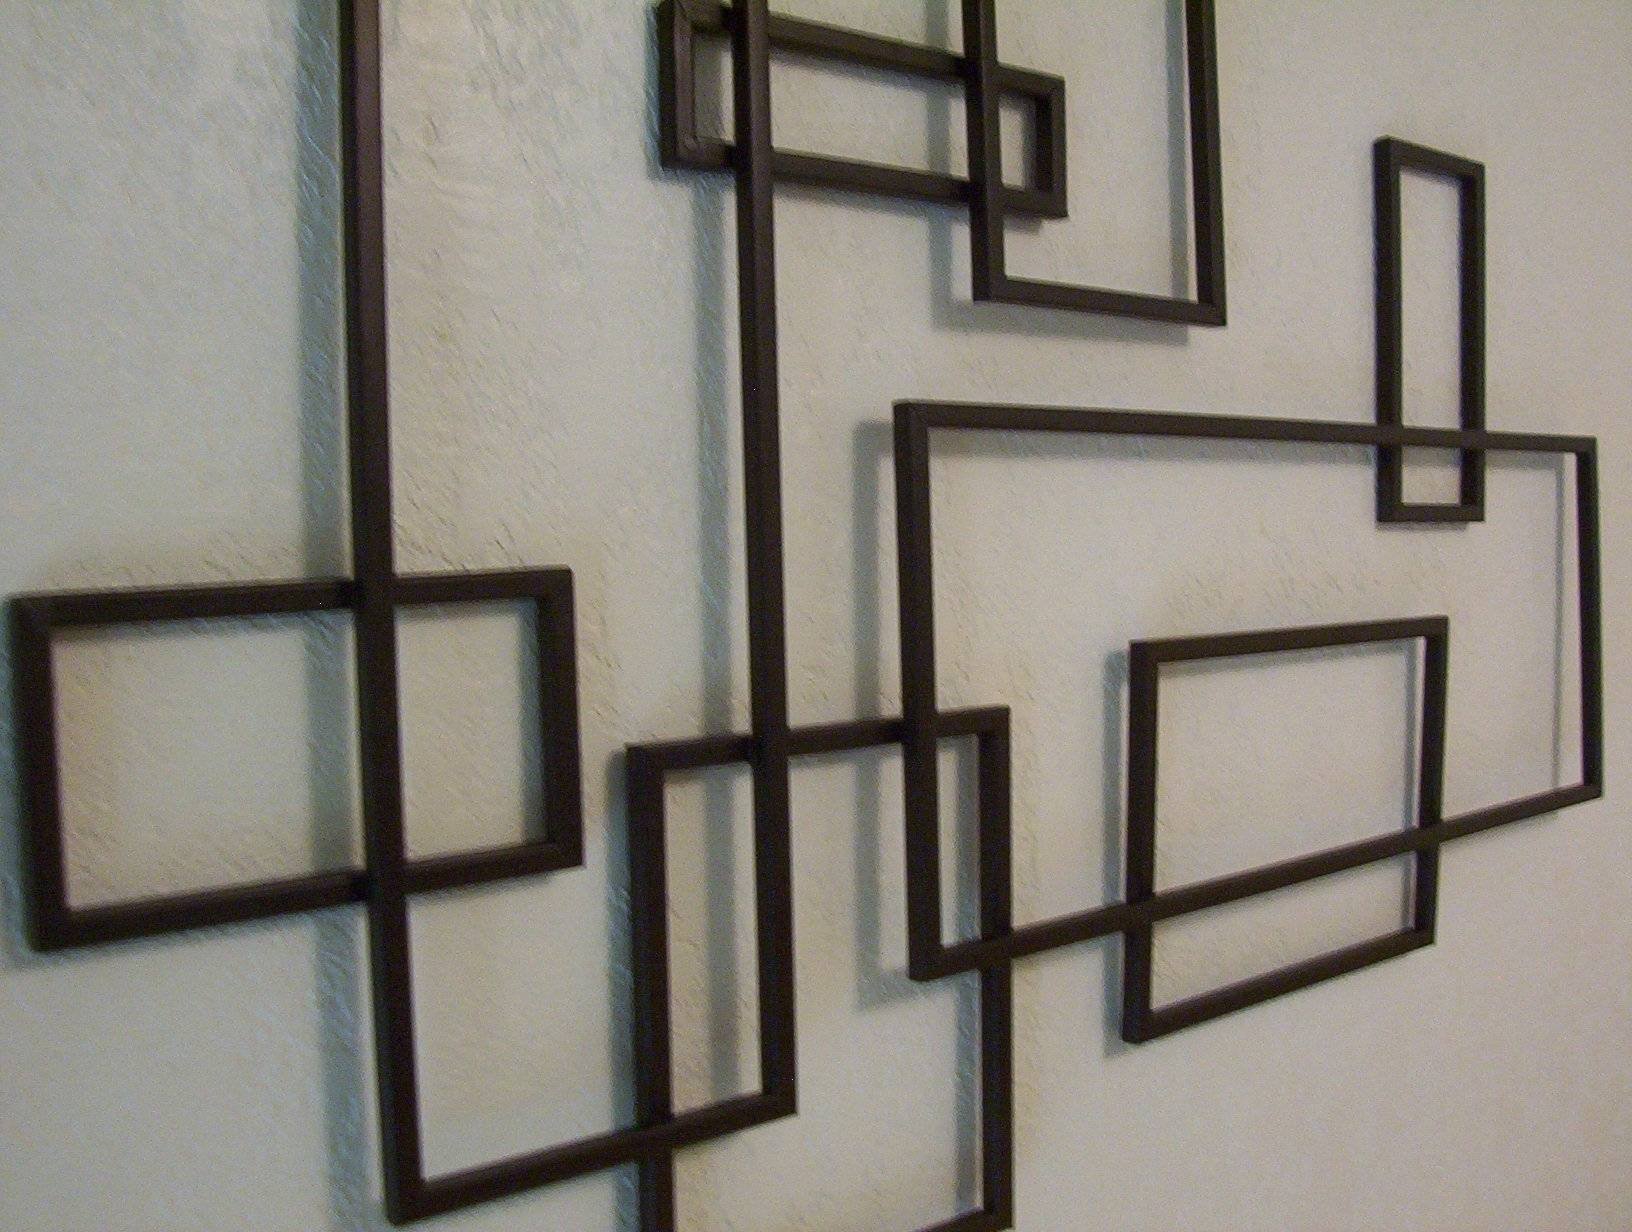 Perfectly Decorate Your Home With Geometric Metal Wall Art | Subuha Inside Most Current Geometric Metal Wall Art (View 13 of 20)